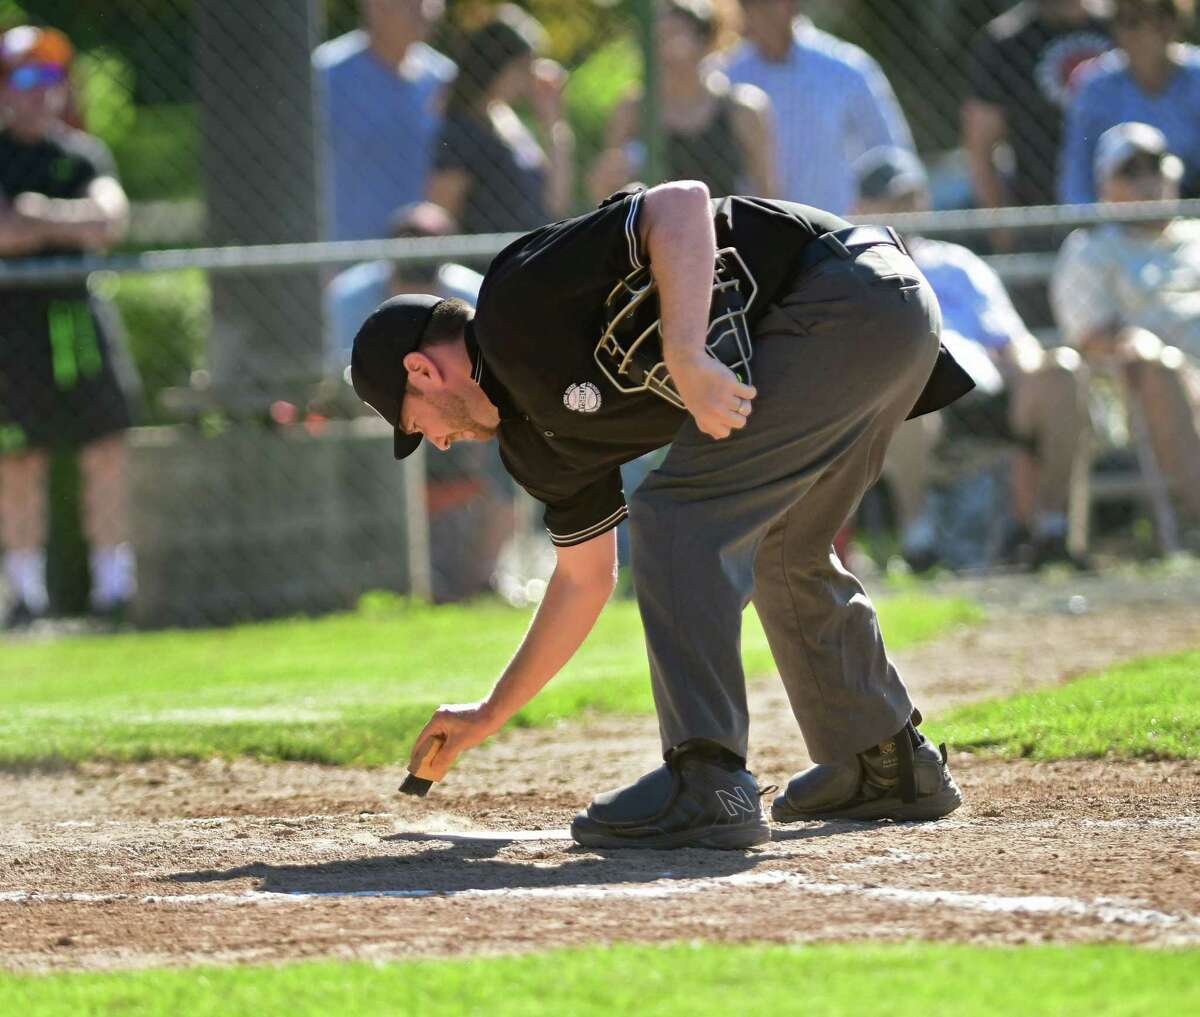 Home plate umpire Sean Ellott brushes off the dirt from home plate in between batters during a baseball game between Colonie and Columbia at Cook Park on Thursday, June 10, 2021 in Colonie, N.Y. (Lori Van Buren/Times Union)